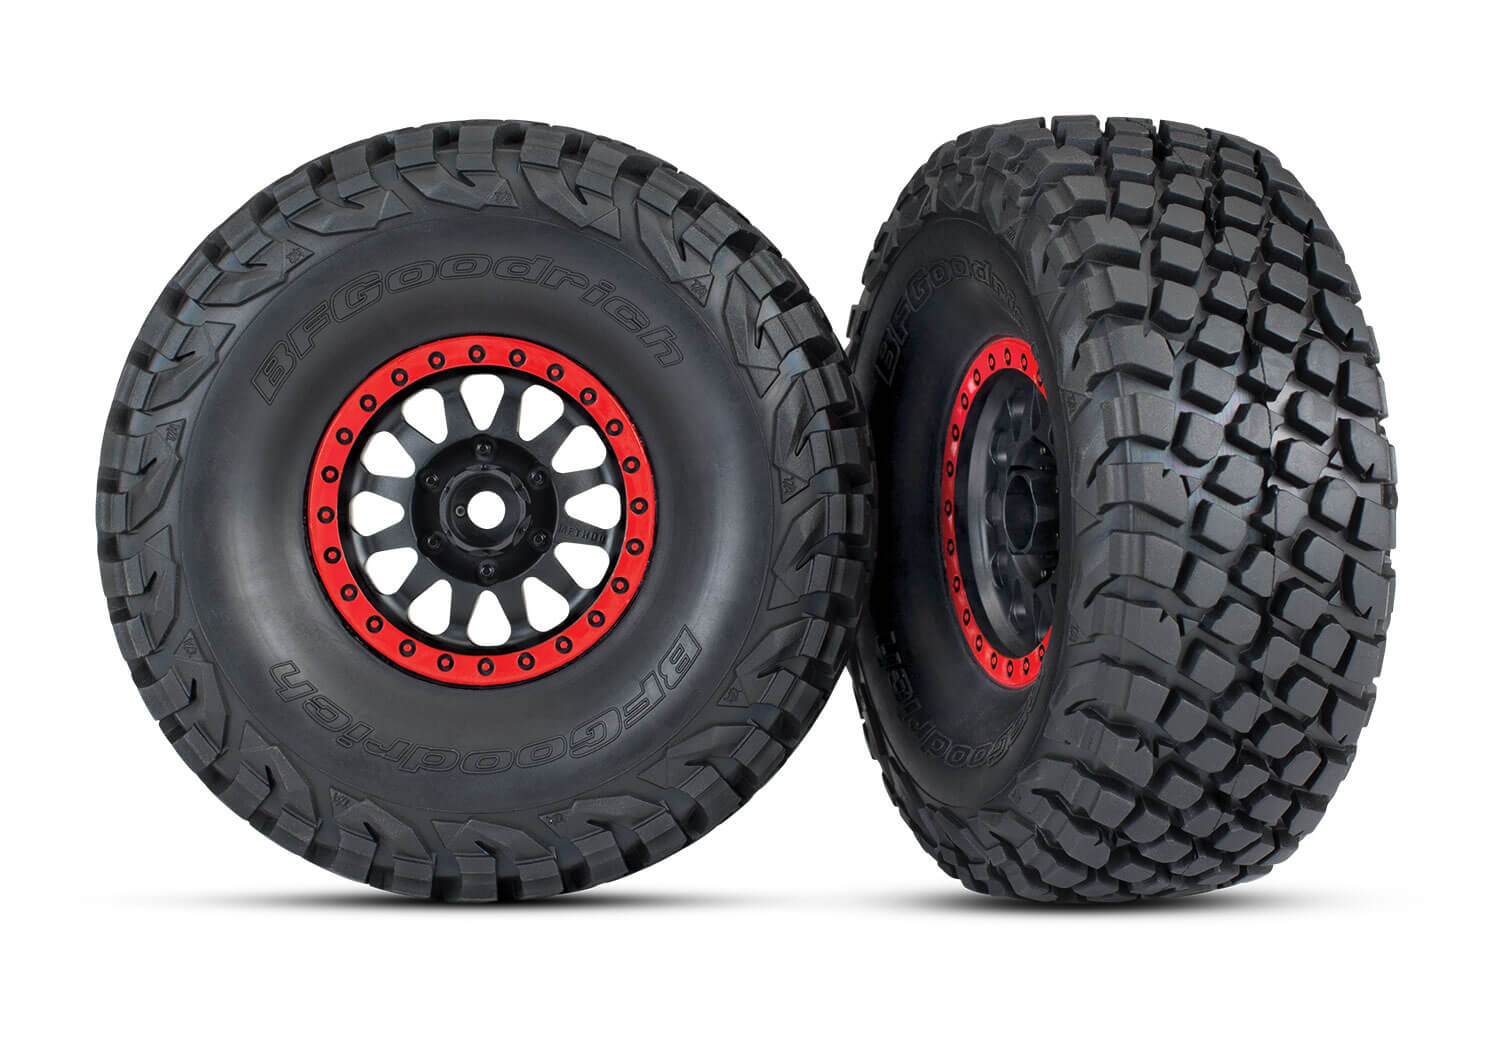 details-bfg-wheels-tires-red